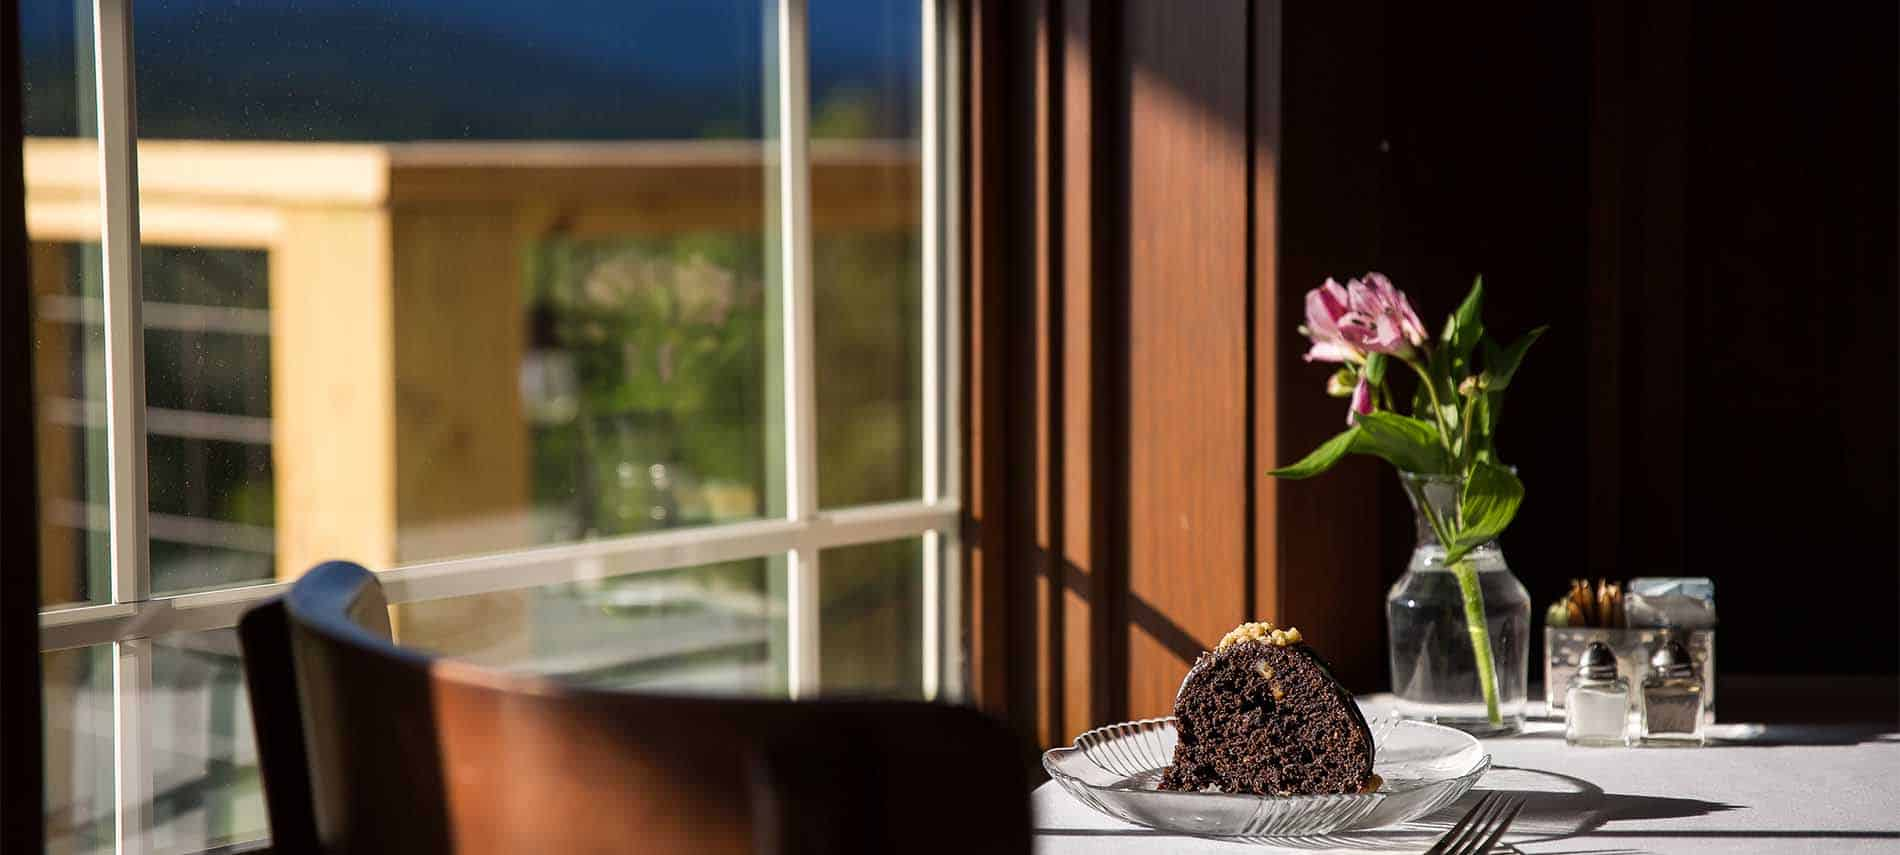 Chocolate cake on a glass plate, on a table with floral centerpiece, in a window with intentional focal blur.